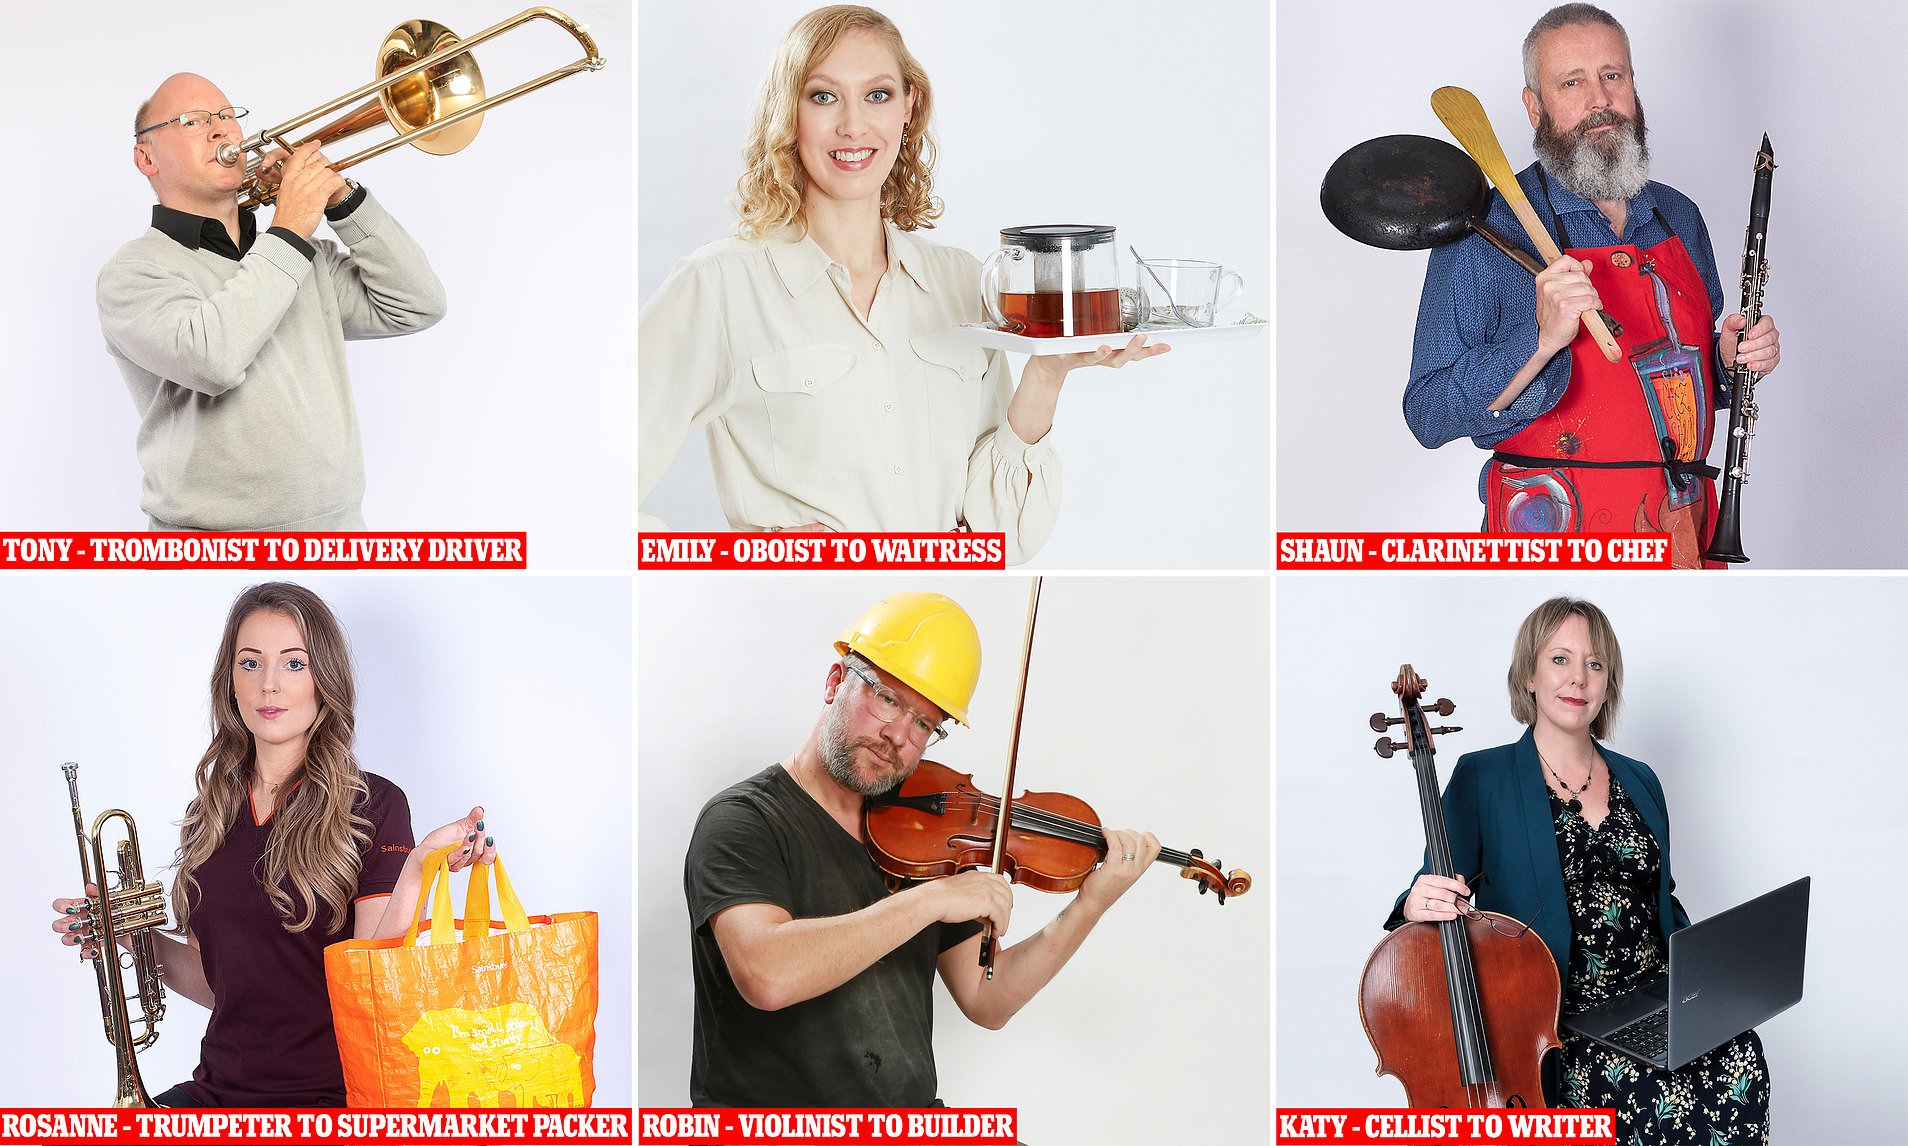 Meet the musicians who have taken up 'viable' jobs